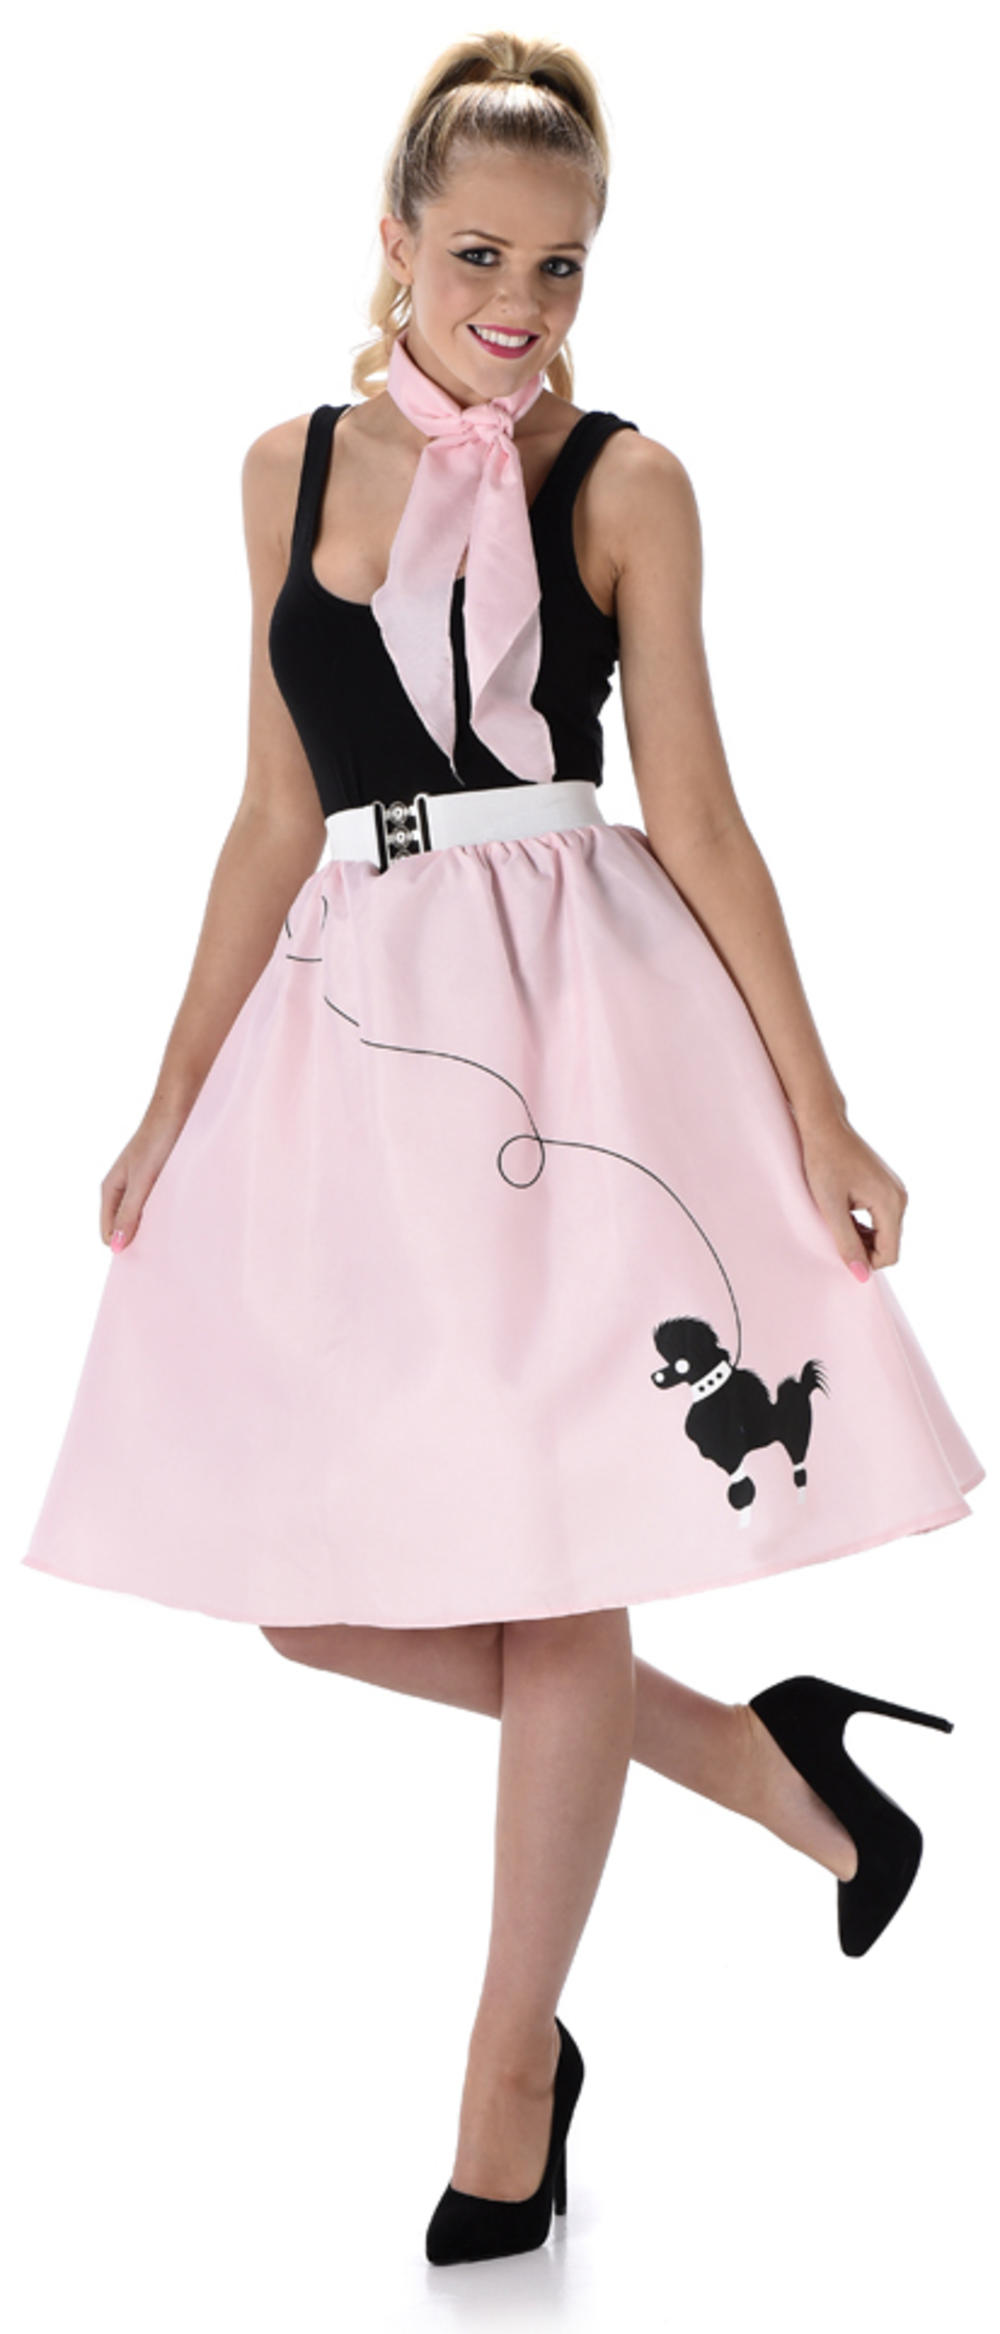 Baby Pink Poodle Skirt Ladies Fancy Dress 50s 60s Rock & Roll Womens Costume New